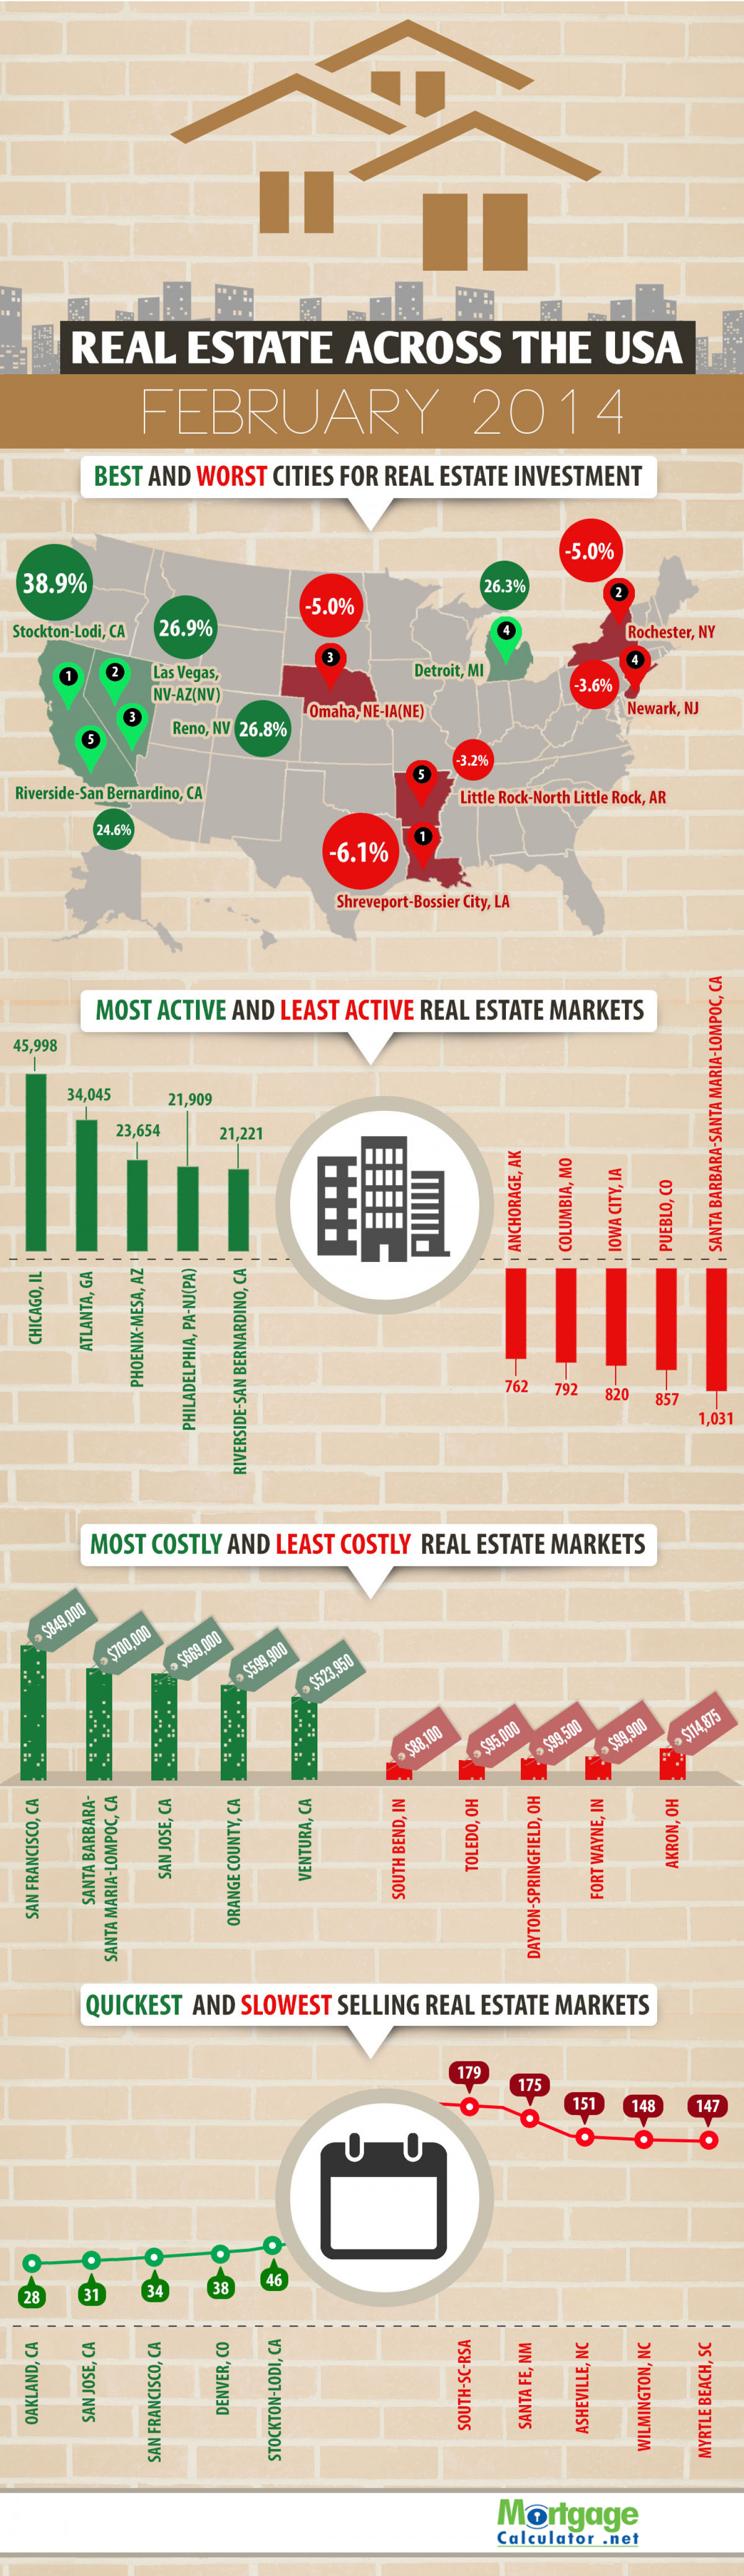 Real Estate Across The USA Infographic